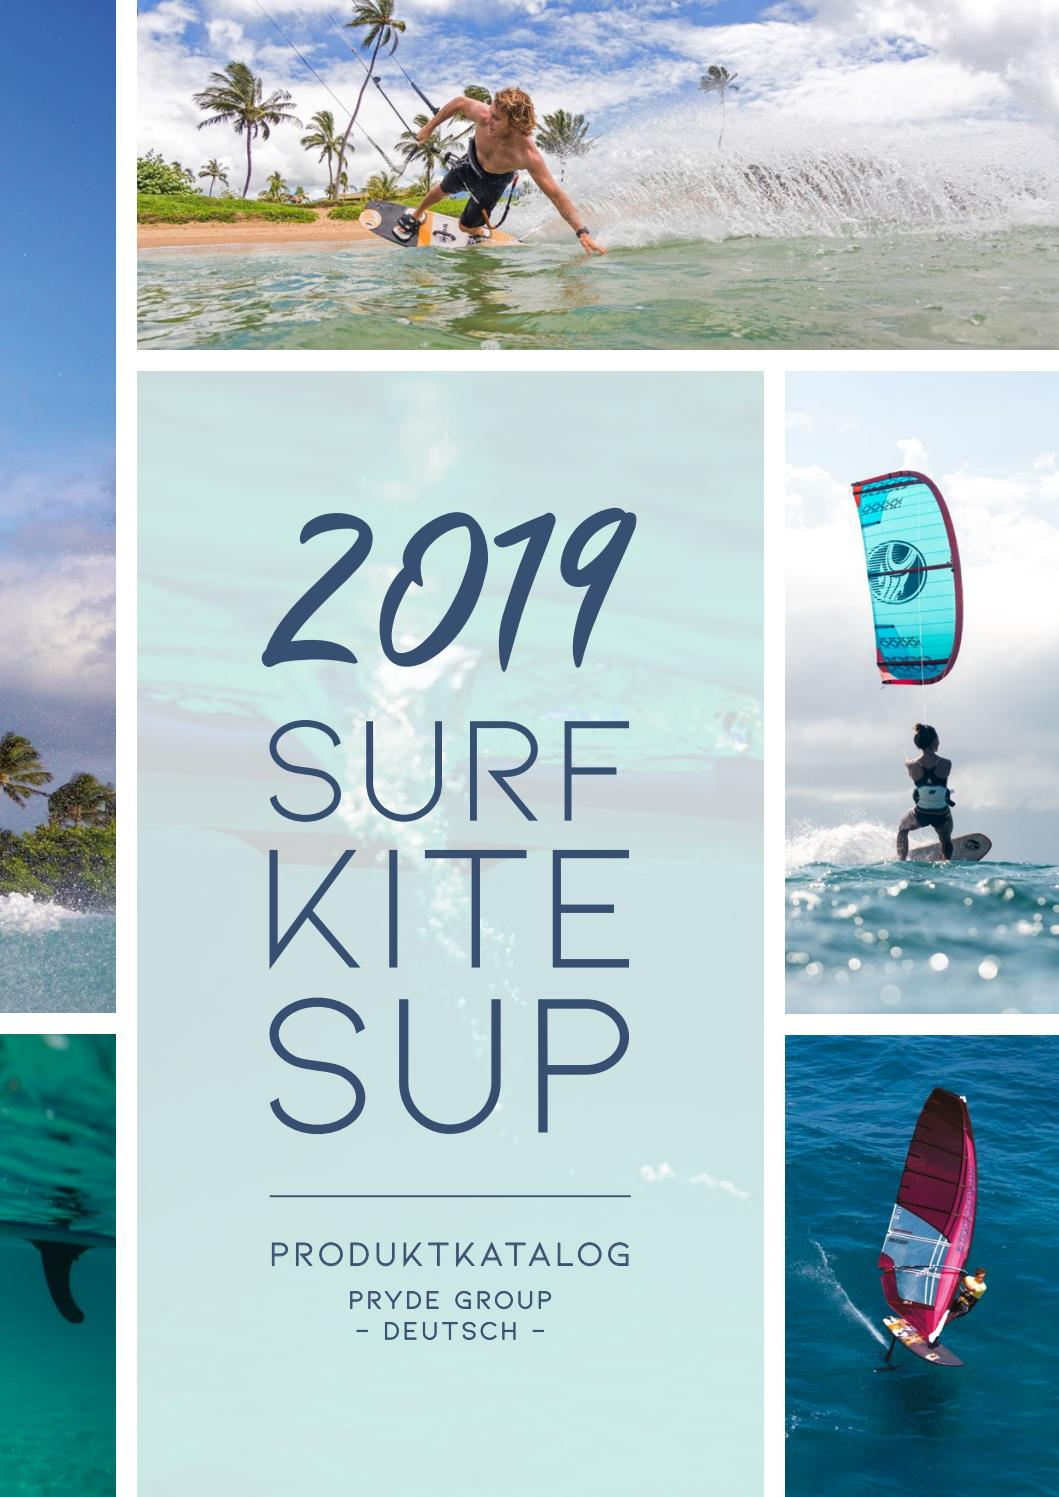 Produkt Katalog 2019 by Pryde Group GmbH issuu